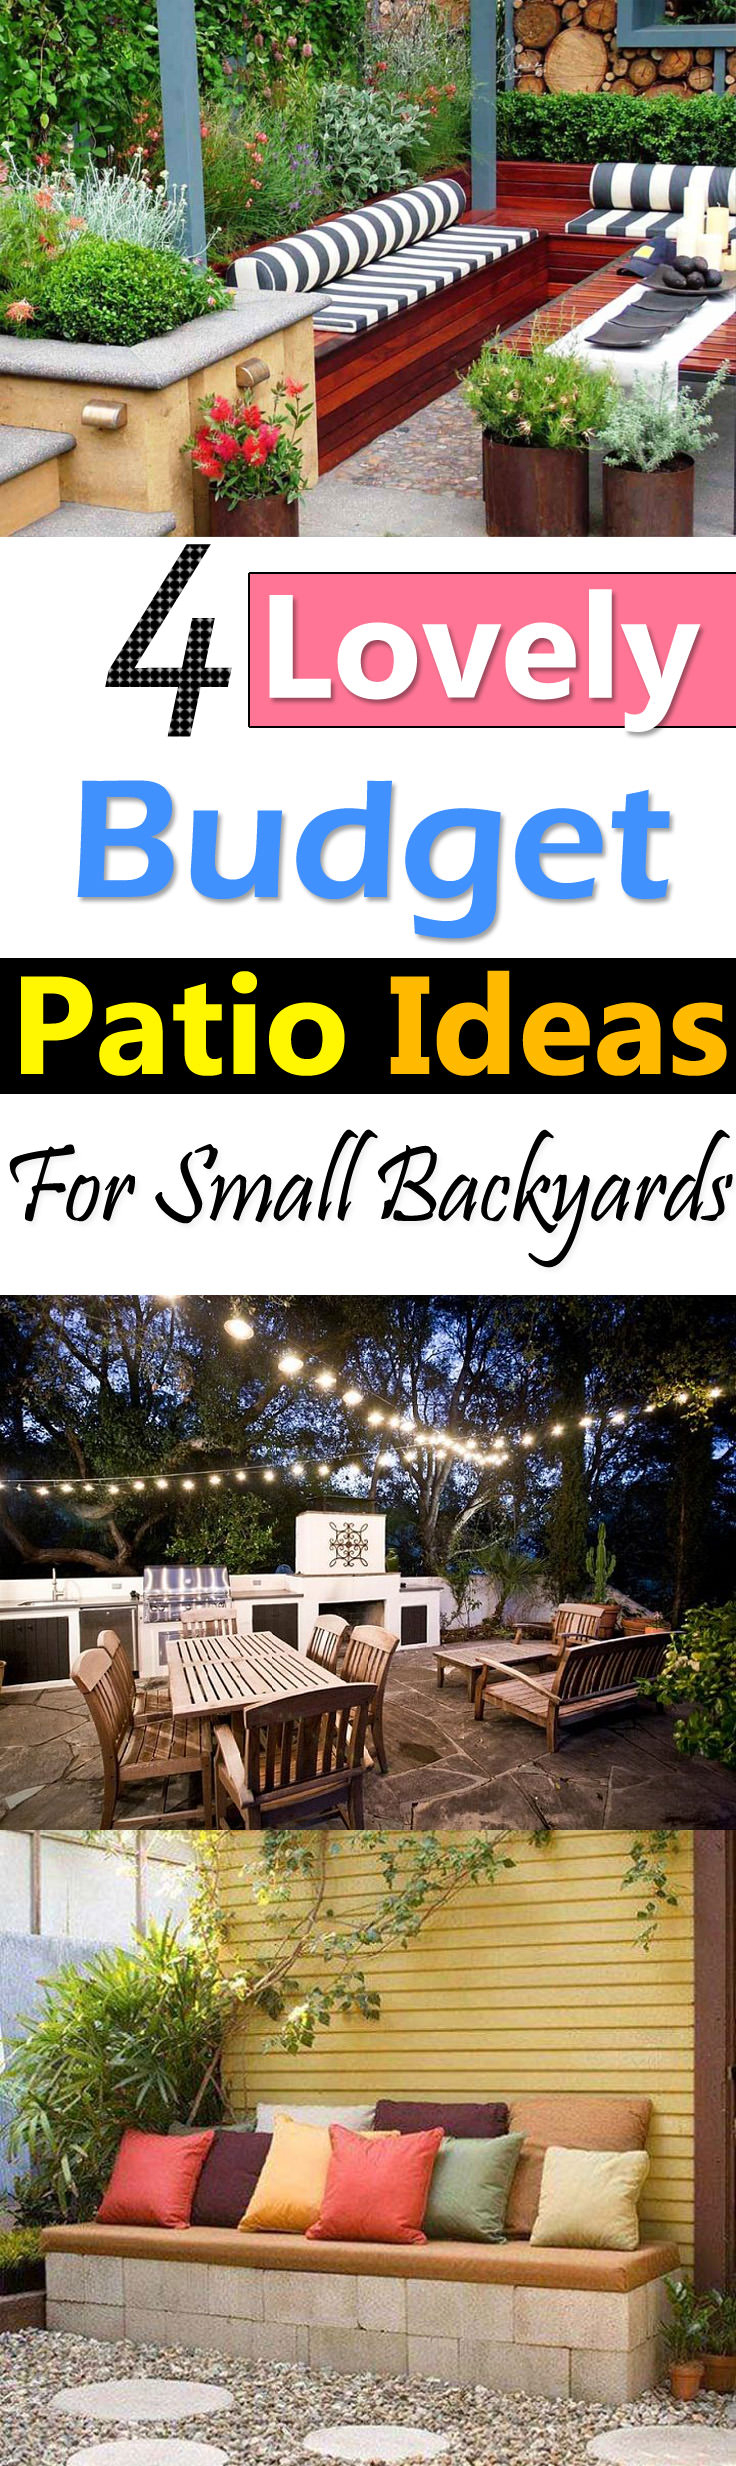 4 Lovely Budget Patio Ideas For Small Backyards Balcony Garden Web pertaining to Patios Ideas Small Backyards